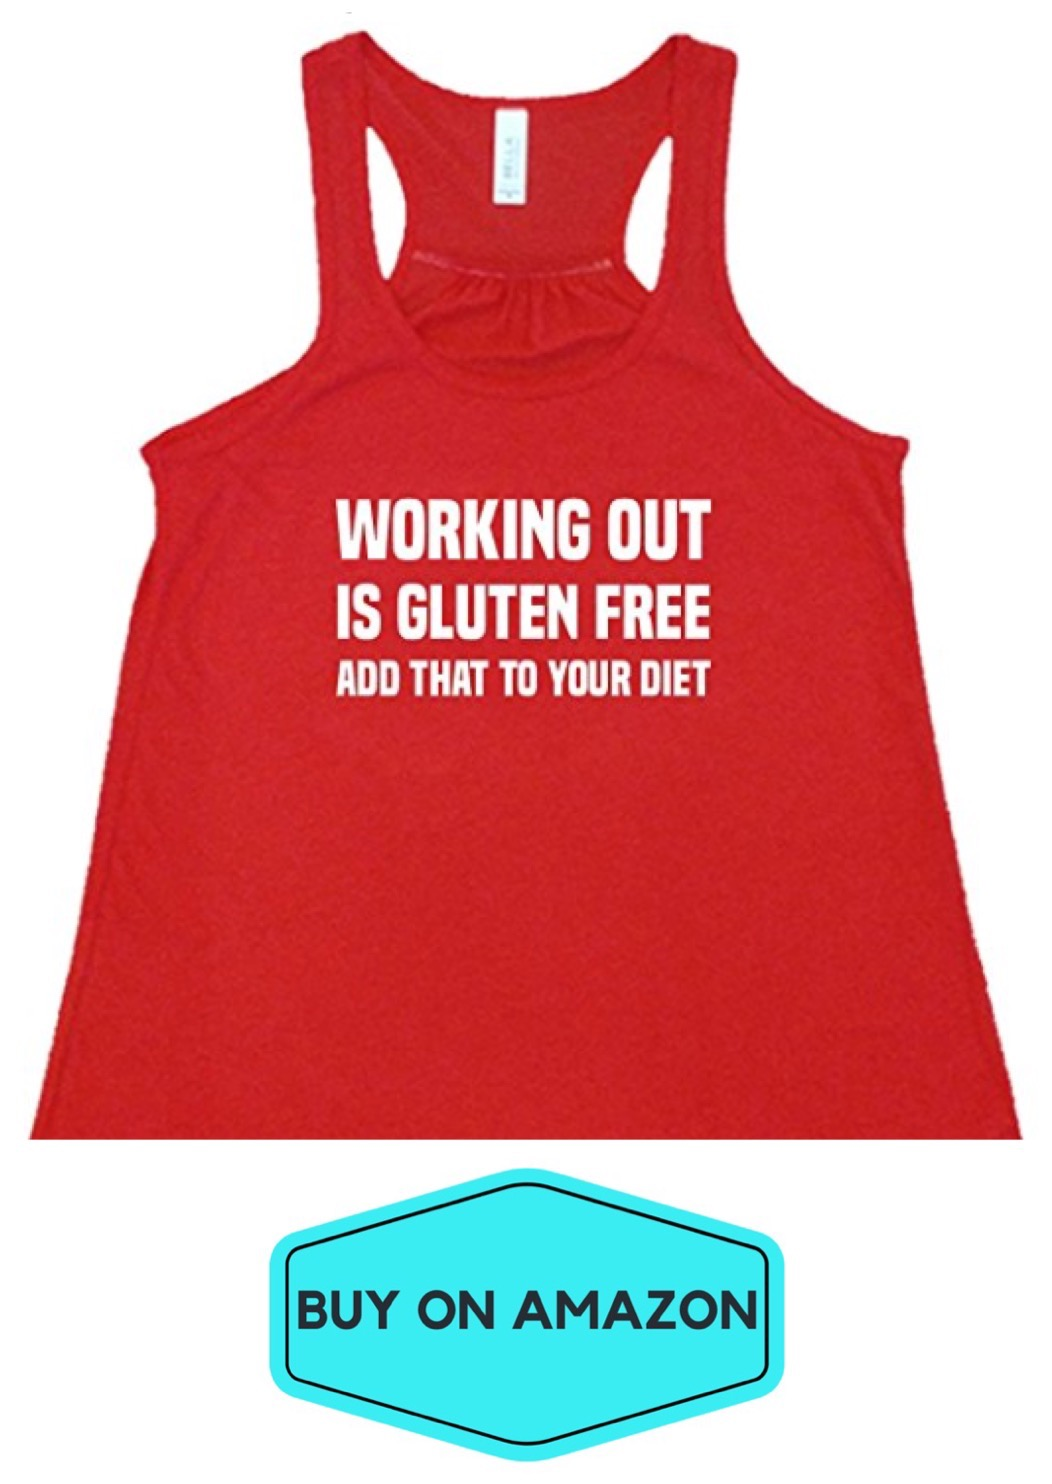 Working Out is Gluten Free Tank